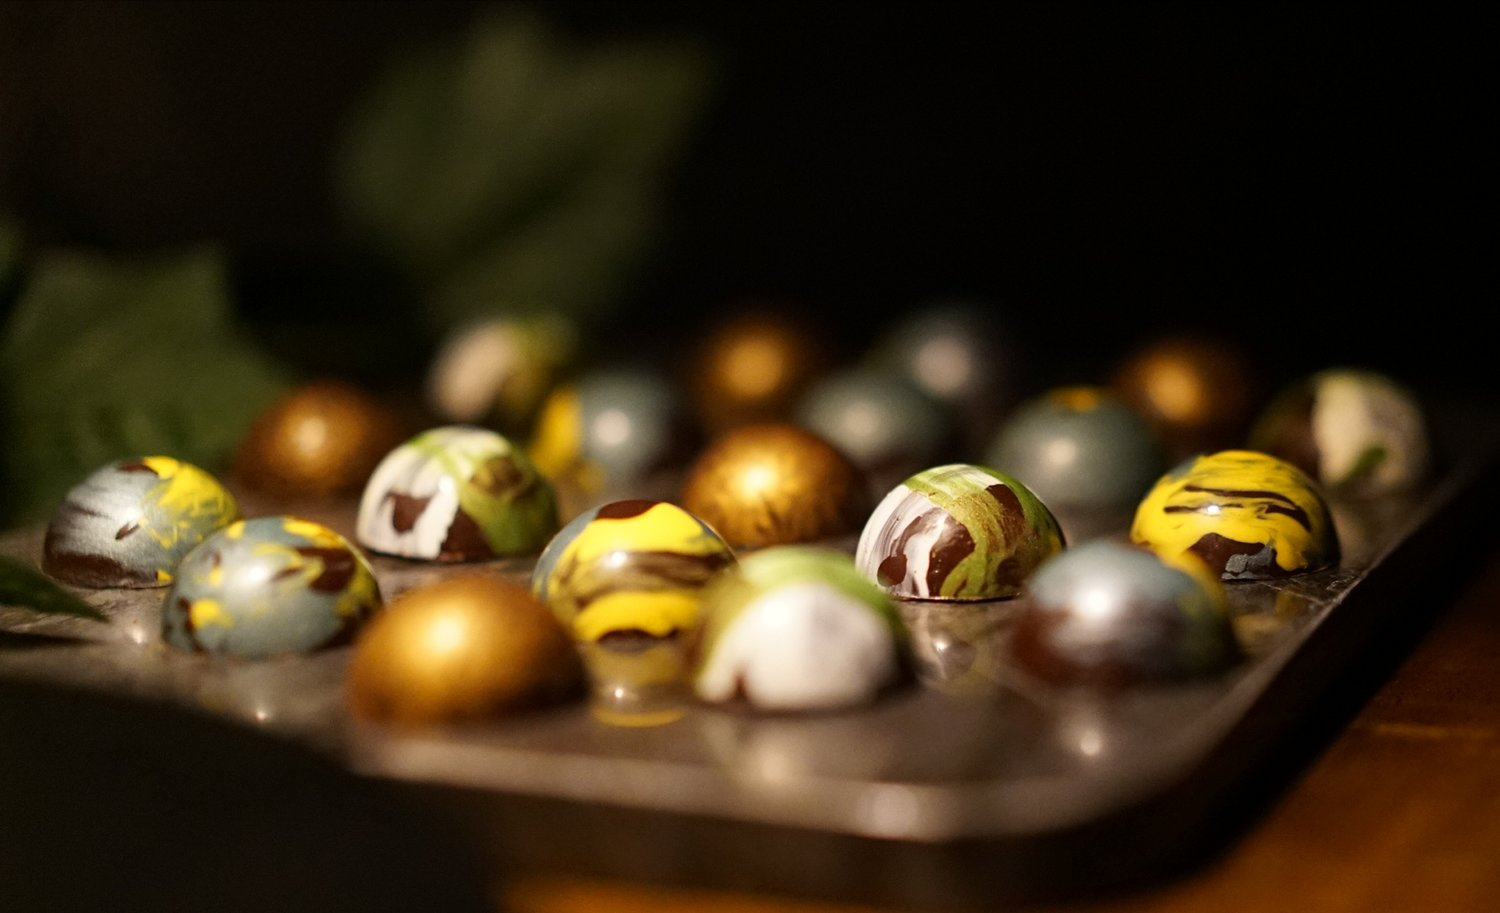 CHOCOLATE BONBONS WORKSHOP WITH ESTI GARCIA 6